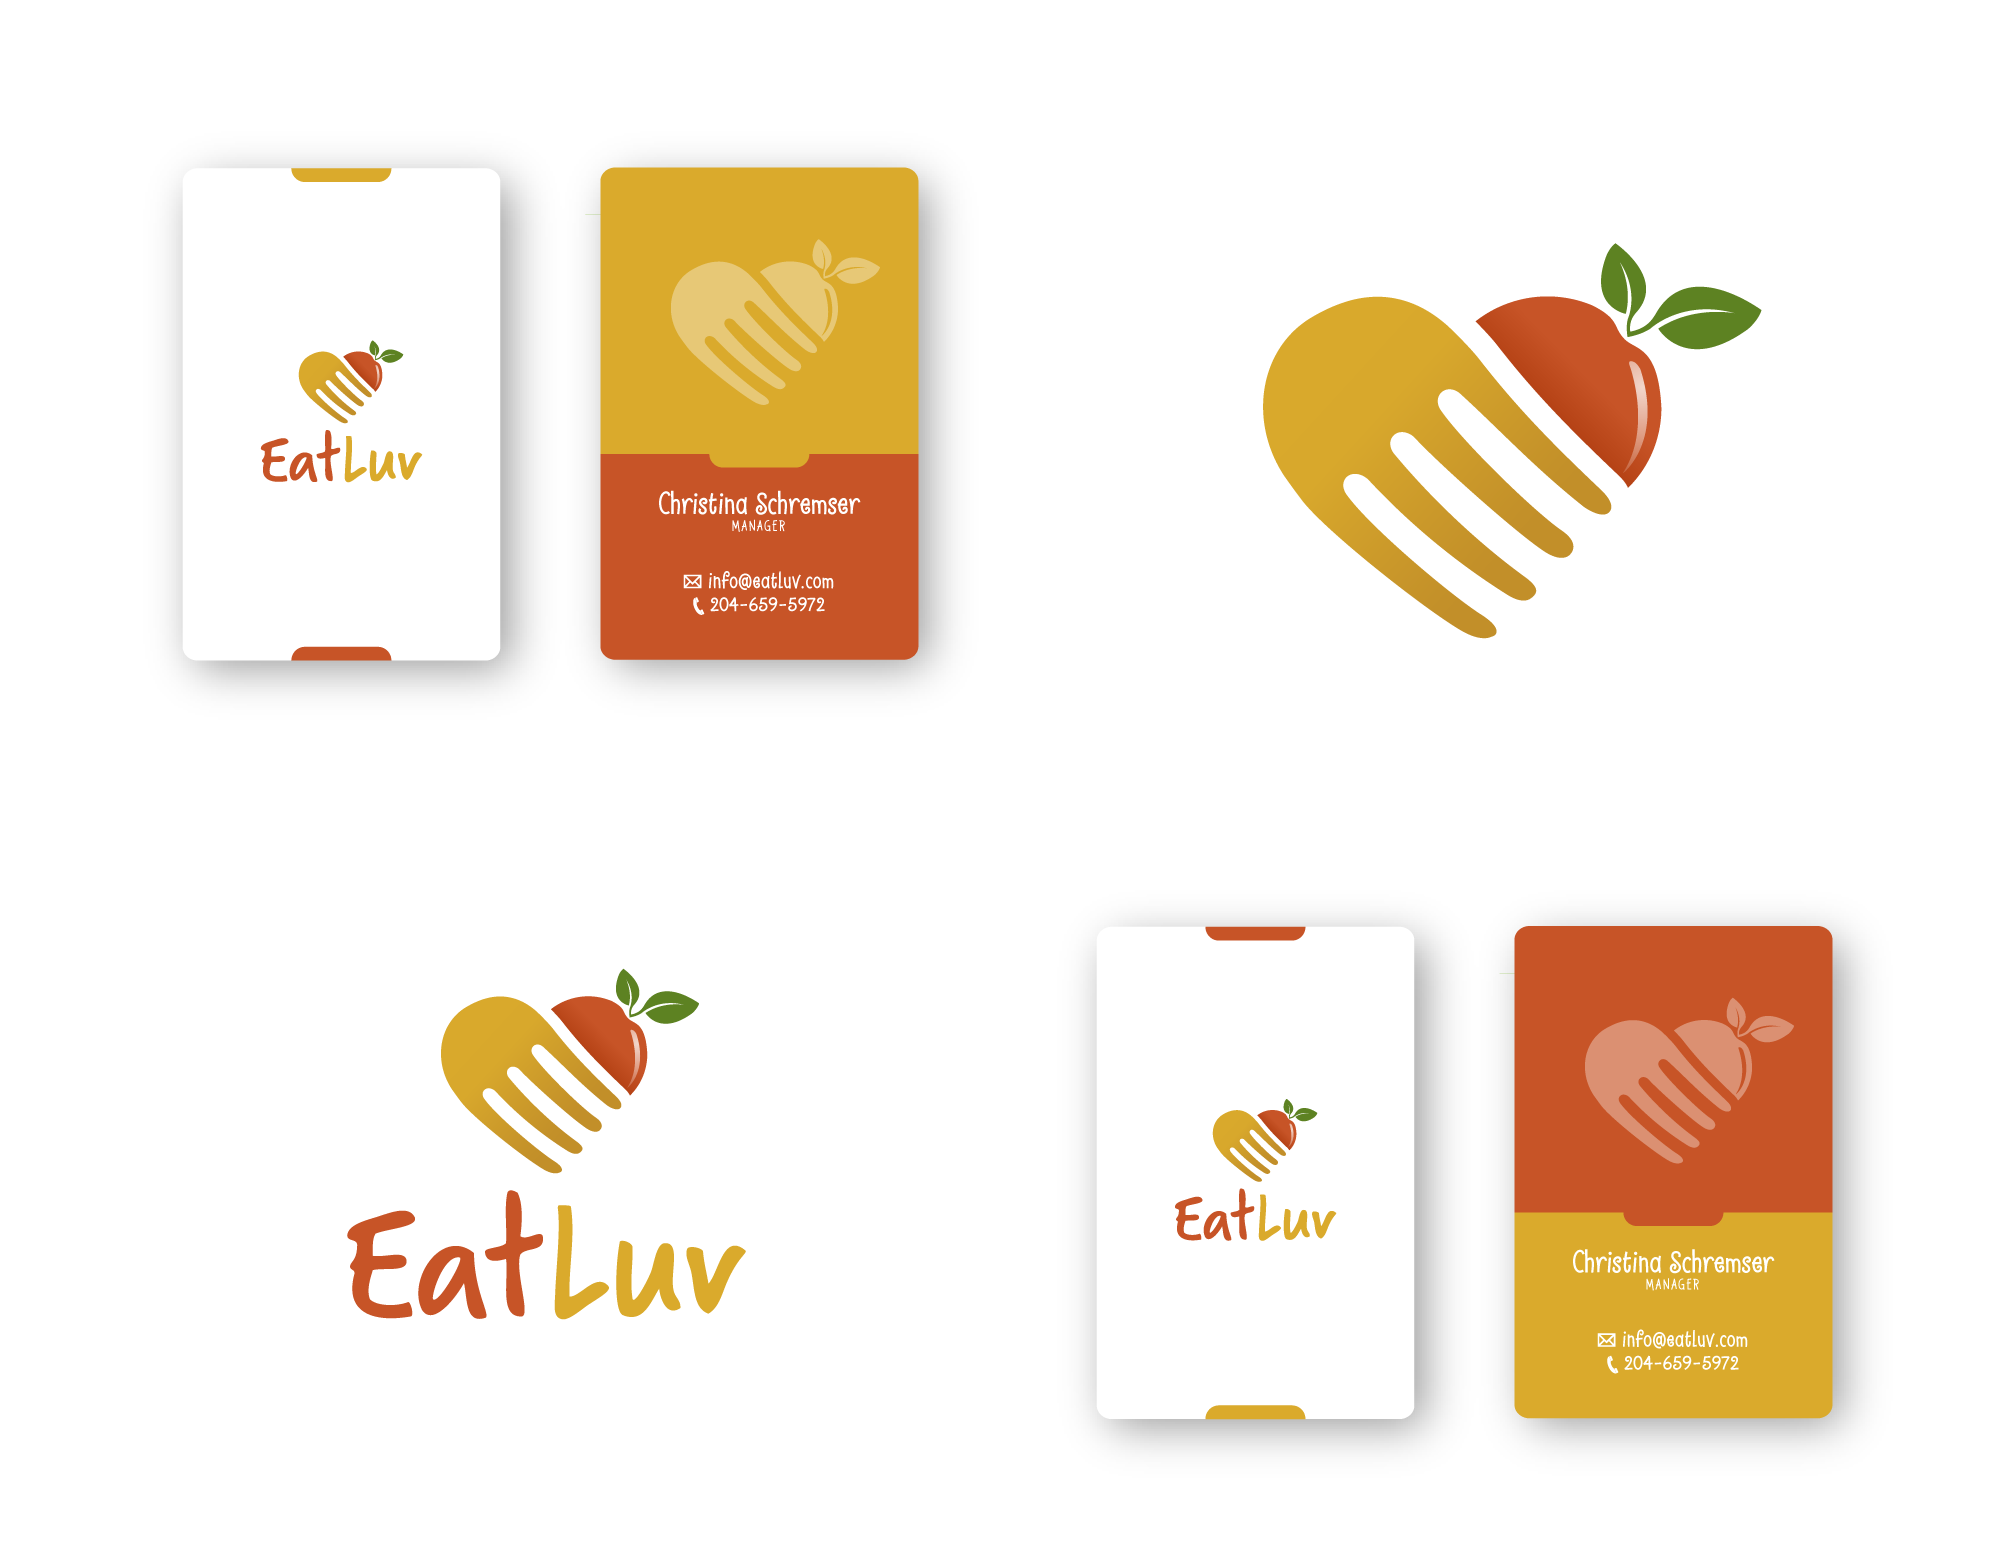 Design a logo for EatLuv, a startup that brings local food and easy recipes to busy home cooks